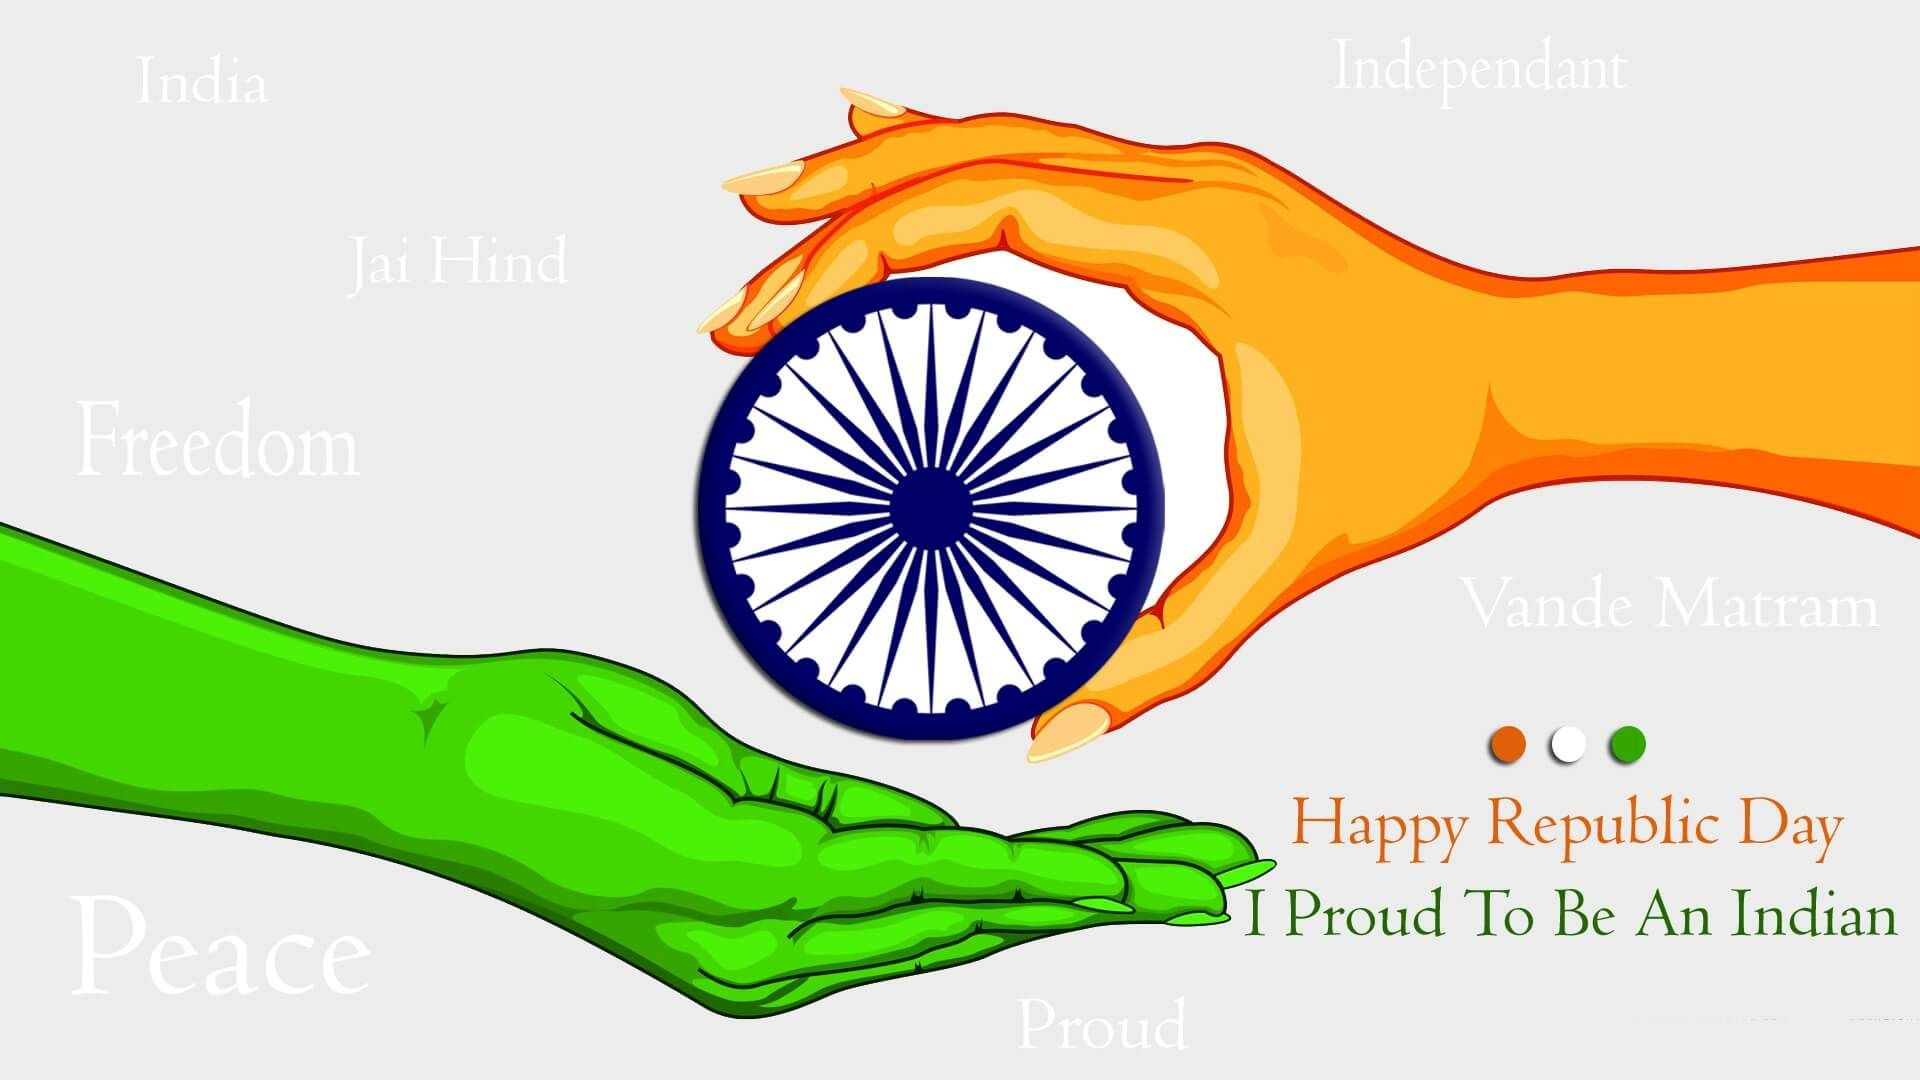 50 Happy Republic Day Images And Photo Collection 2020 List Bark Happy Republic Day Wallpaper Republic Day Quotes On Republic Day Happy republic day 2021 wishes png